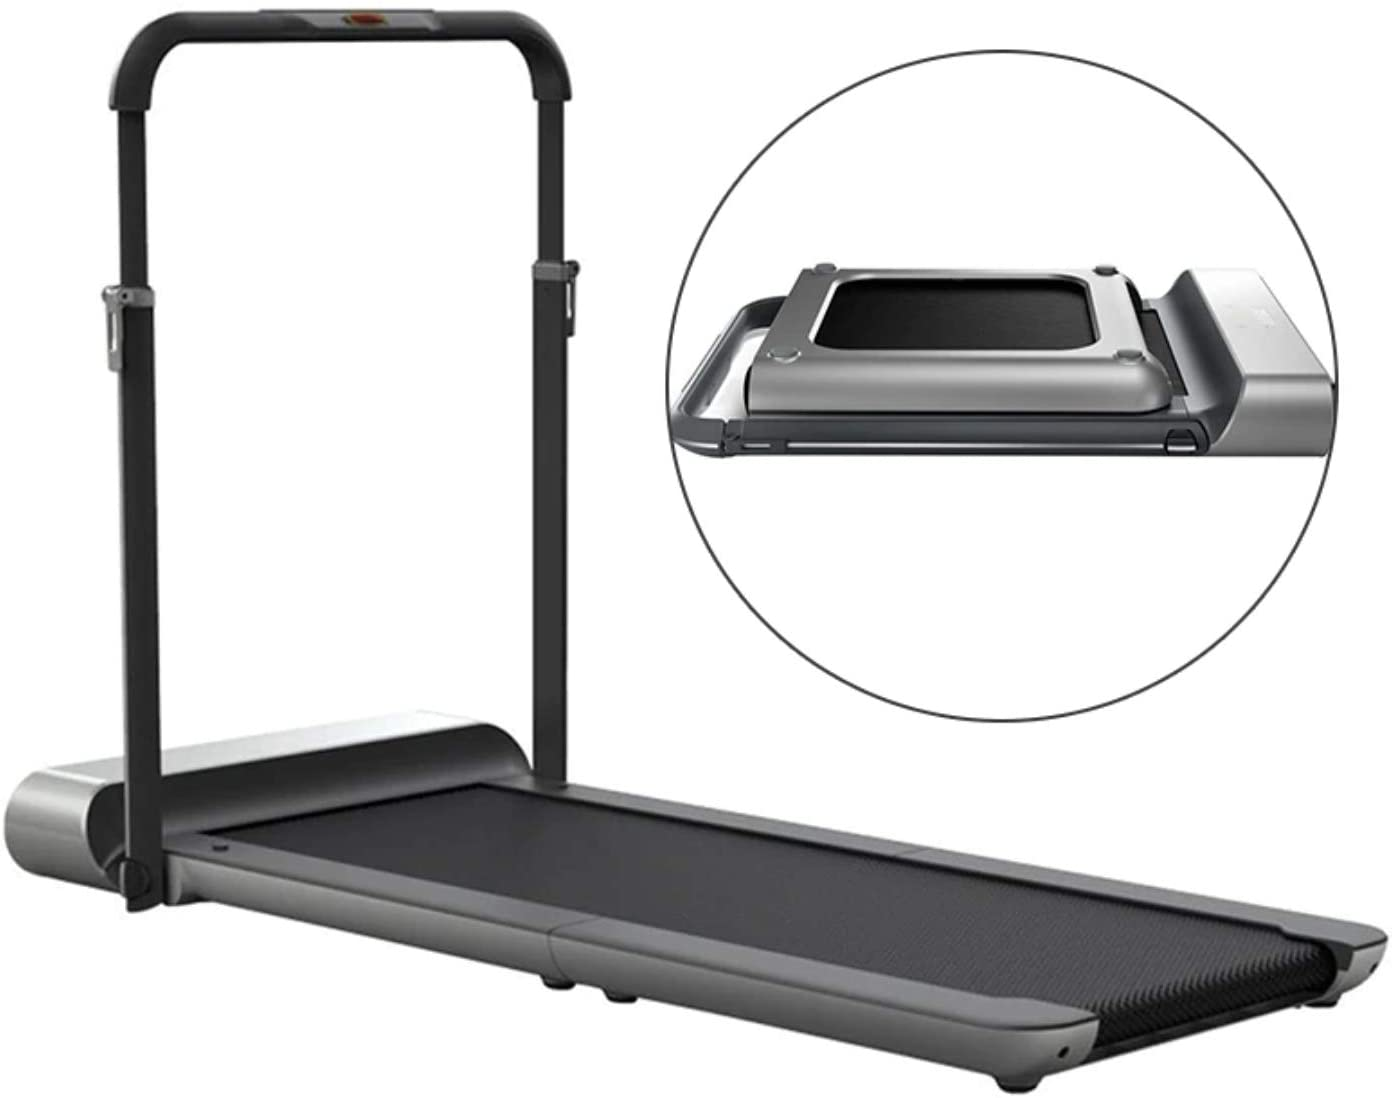 WalkingPad Kingsmith R1 Pro Treadmill Foldable Running Walking Pad with Remote Control | speed 0.5-10 km/h | Walking in the Office, Home |Quiet Operation | English Version, Black